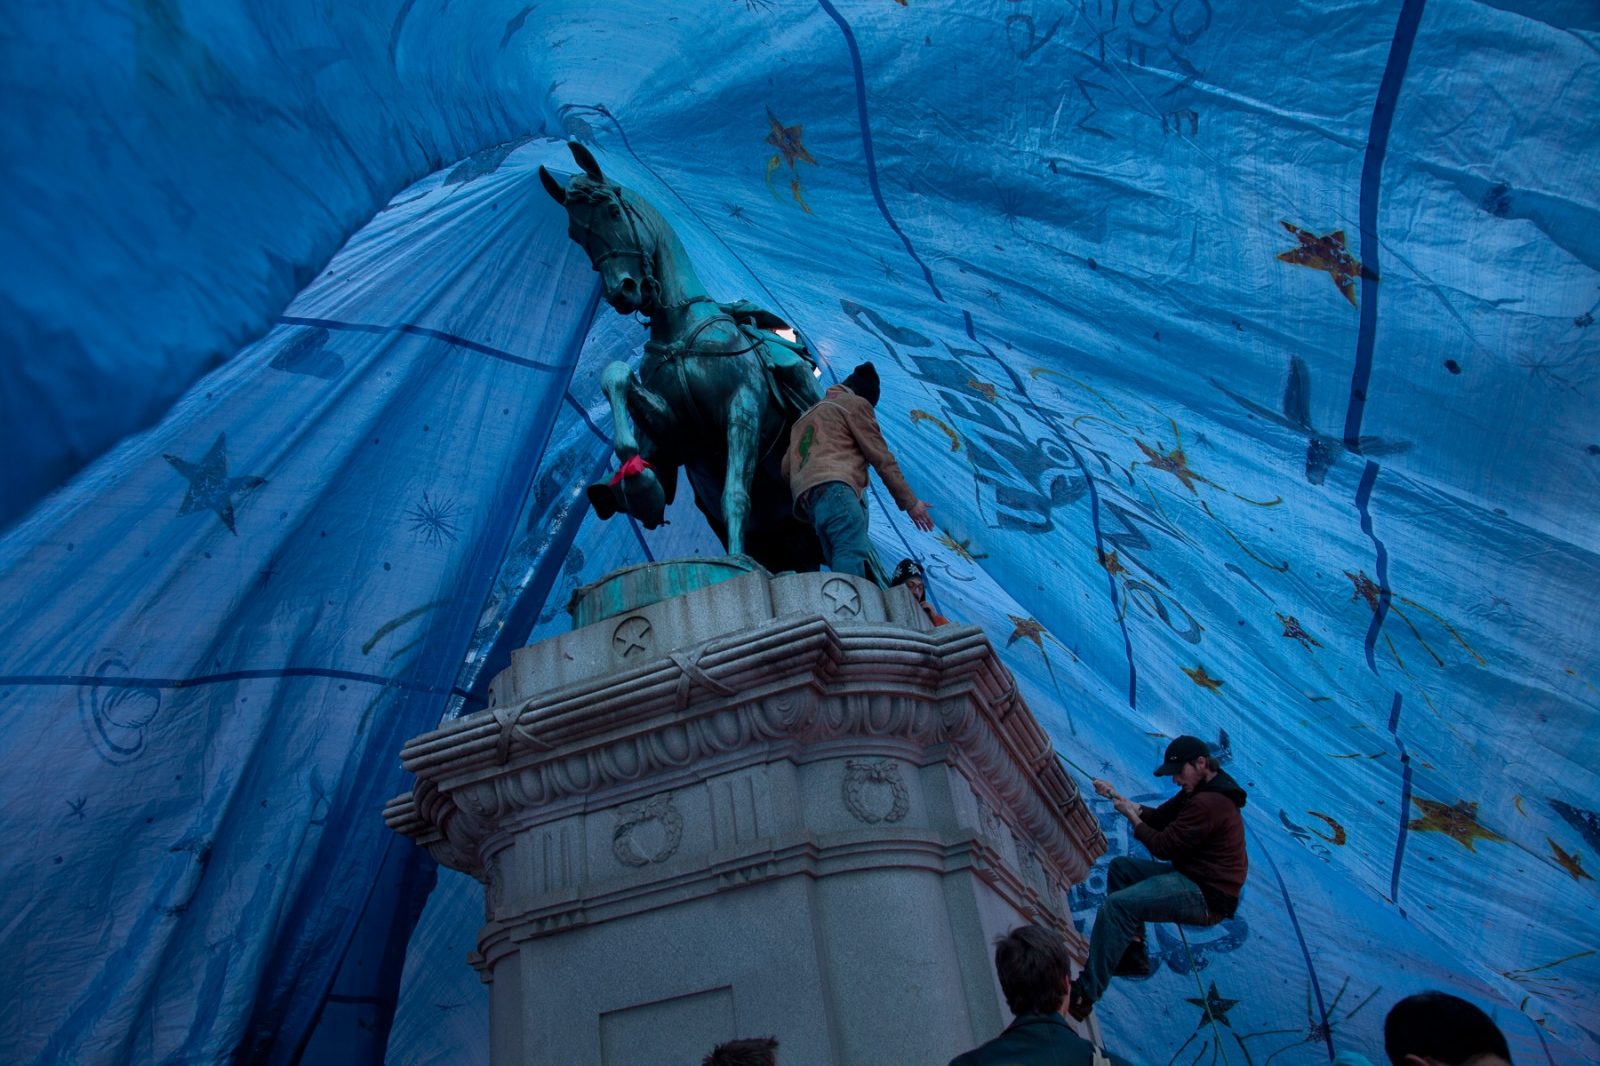 """Occupy DC protestors succeed in putting a tarp over the Statue of General James B. McPherson, which they dubbed the """"Tent of Dreams."""""""